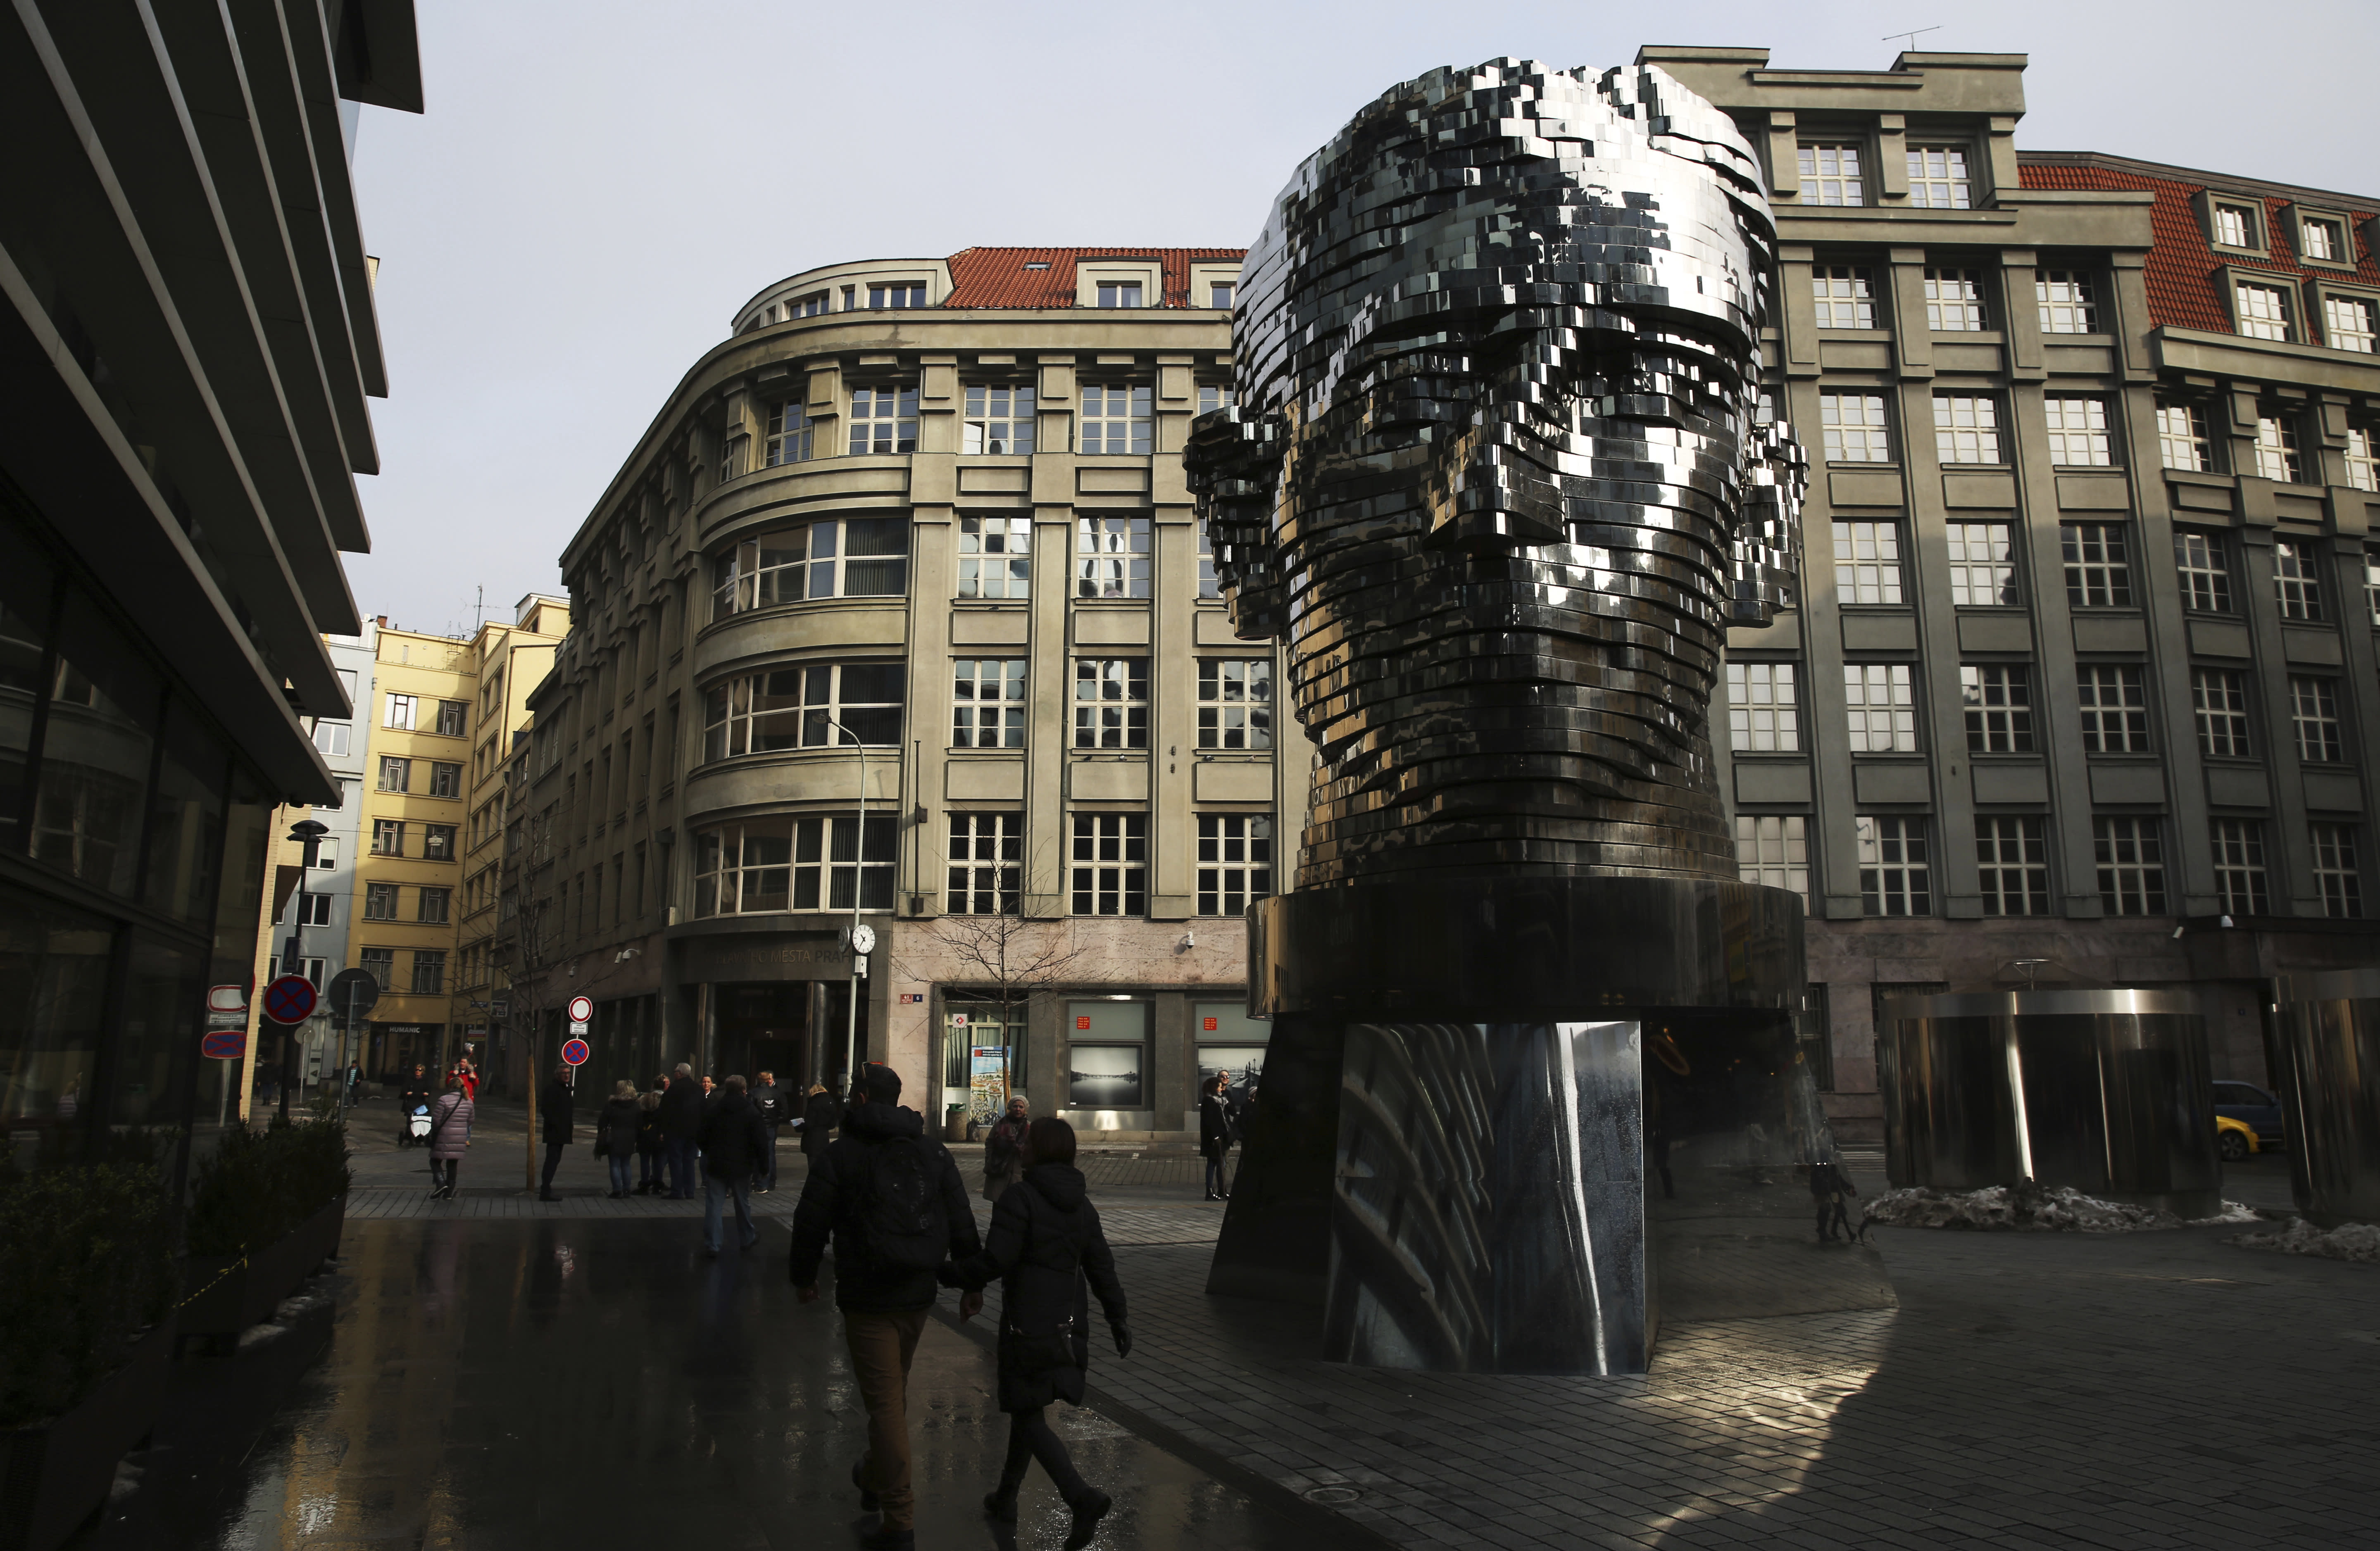 FILE - In this Feb. 4, 2017 file photo, tourists walk past a moving metal sculpture of writer Franz Kafka in his birth city of Prague, Czech Republic, on Saturday, Feb. 4, 2017. A long-hidden trove of unpublished works by Franz Kafka could soon be revealed following a decade-long battle over his literary estate that has drawn comparisons to some of his surreal tales. (AP Photo/Jon Gambrell, File)